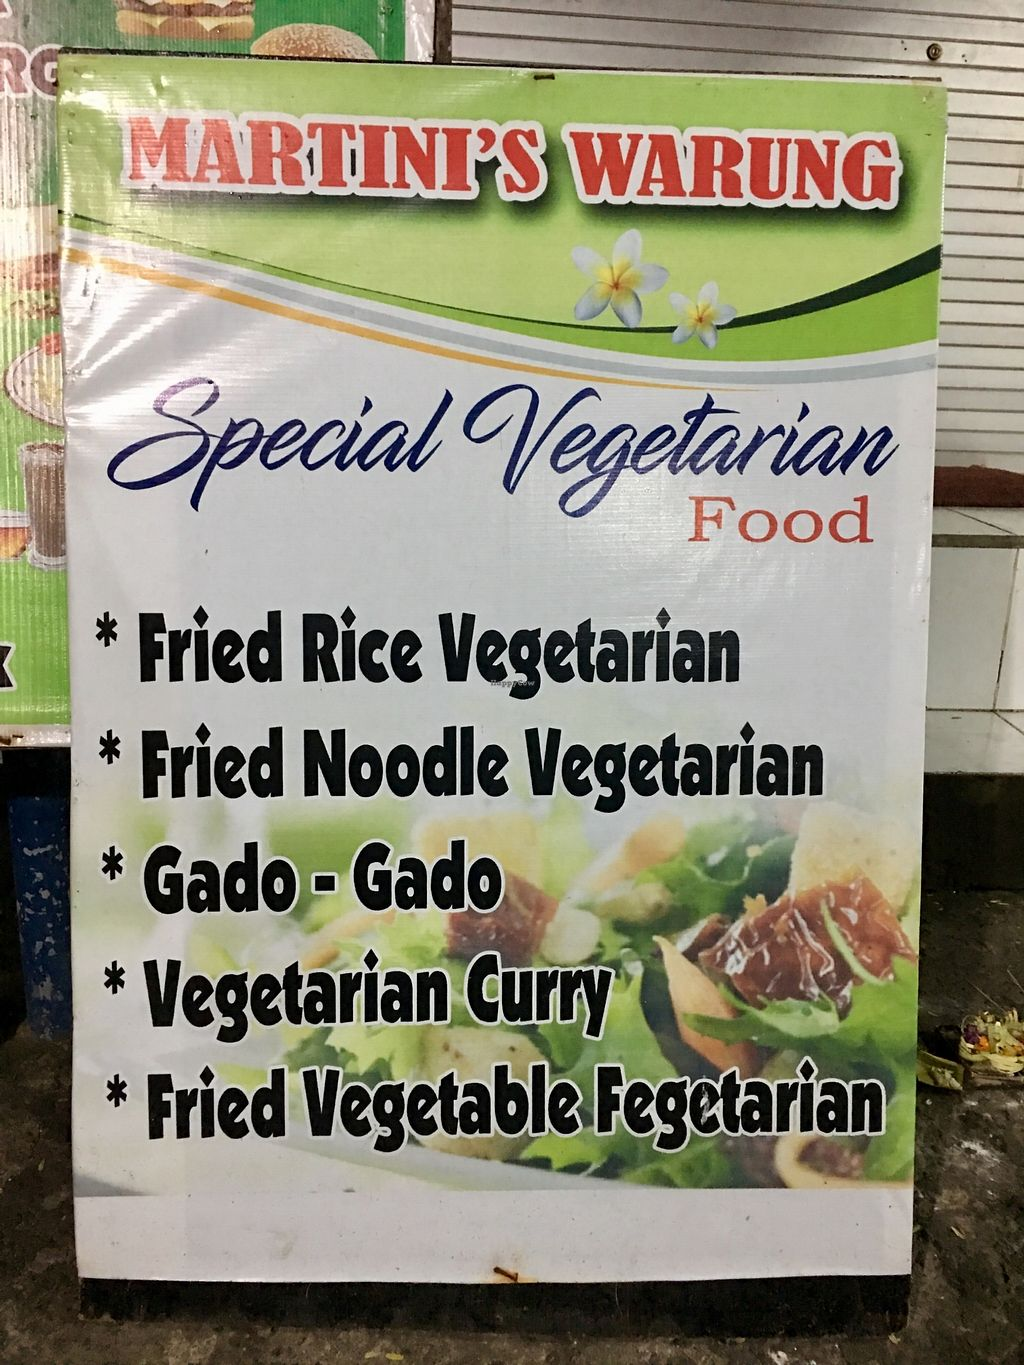 """Photo of Martini's Warung  by <a href=""""/members/profile/AnthonyPolicano"""">AnthonyPolicano</a> <br/>Don't let the spelling fool you.. Martini 'gets' Vegan right! <br/> July 21, 2017  - <a href='/contact/abuse/image/96302/282907'>Report</a>"""